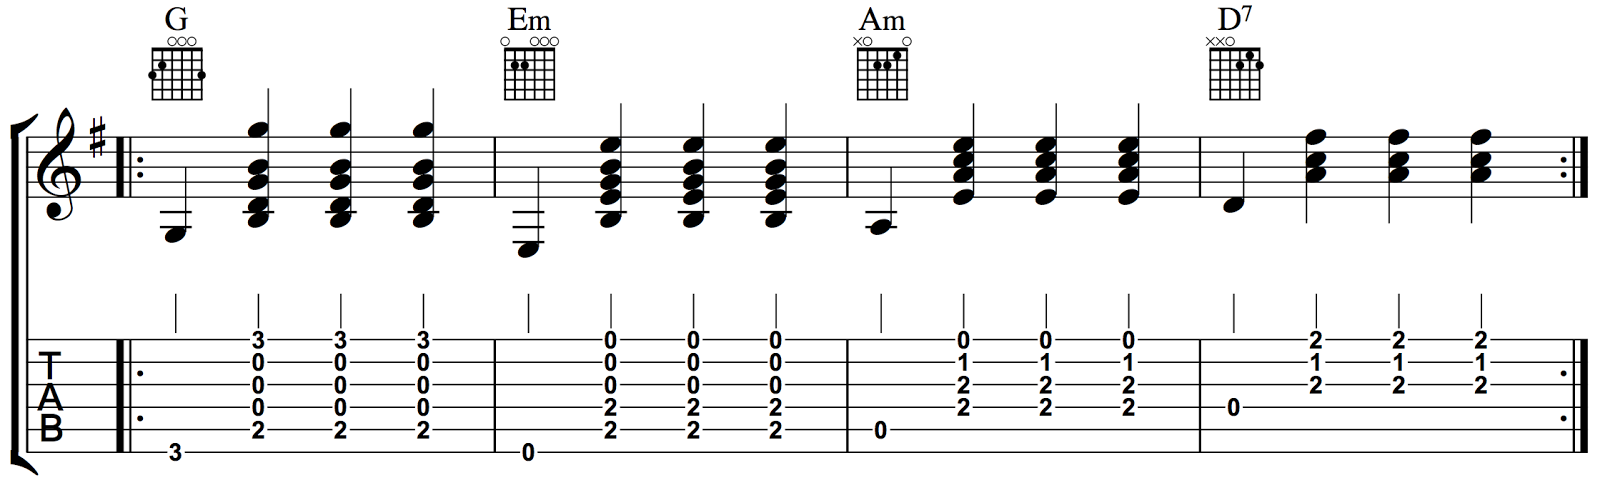 Ghs Guitar Common Chord Progression